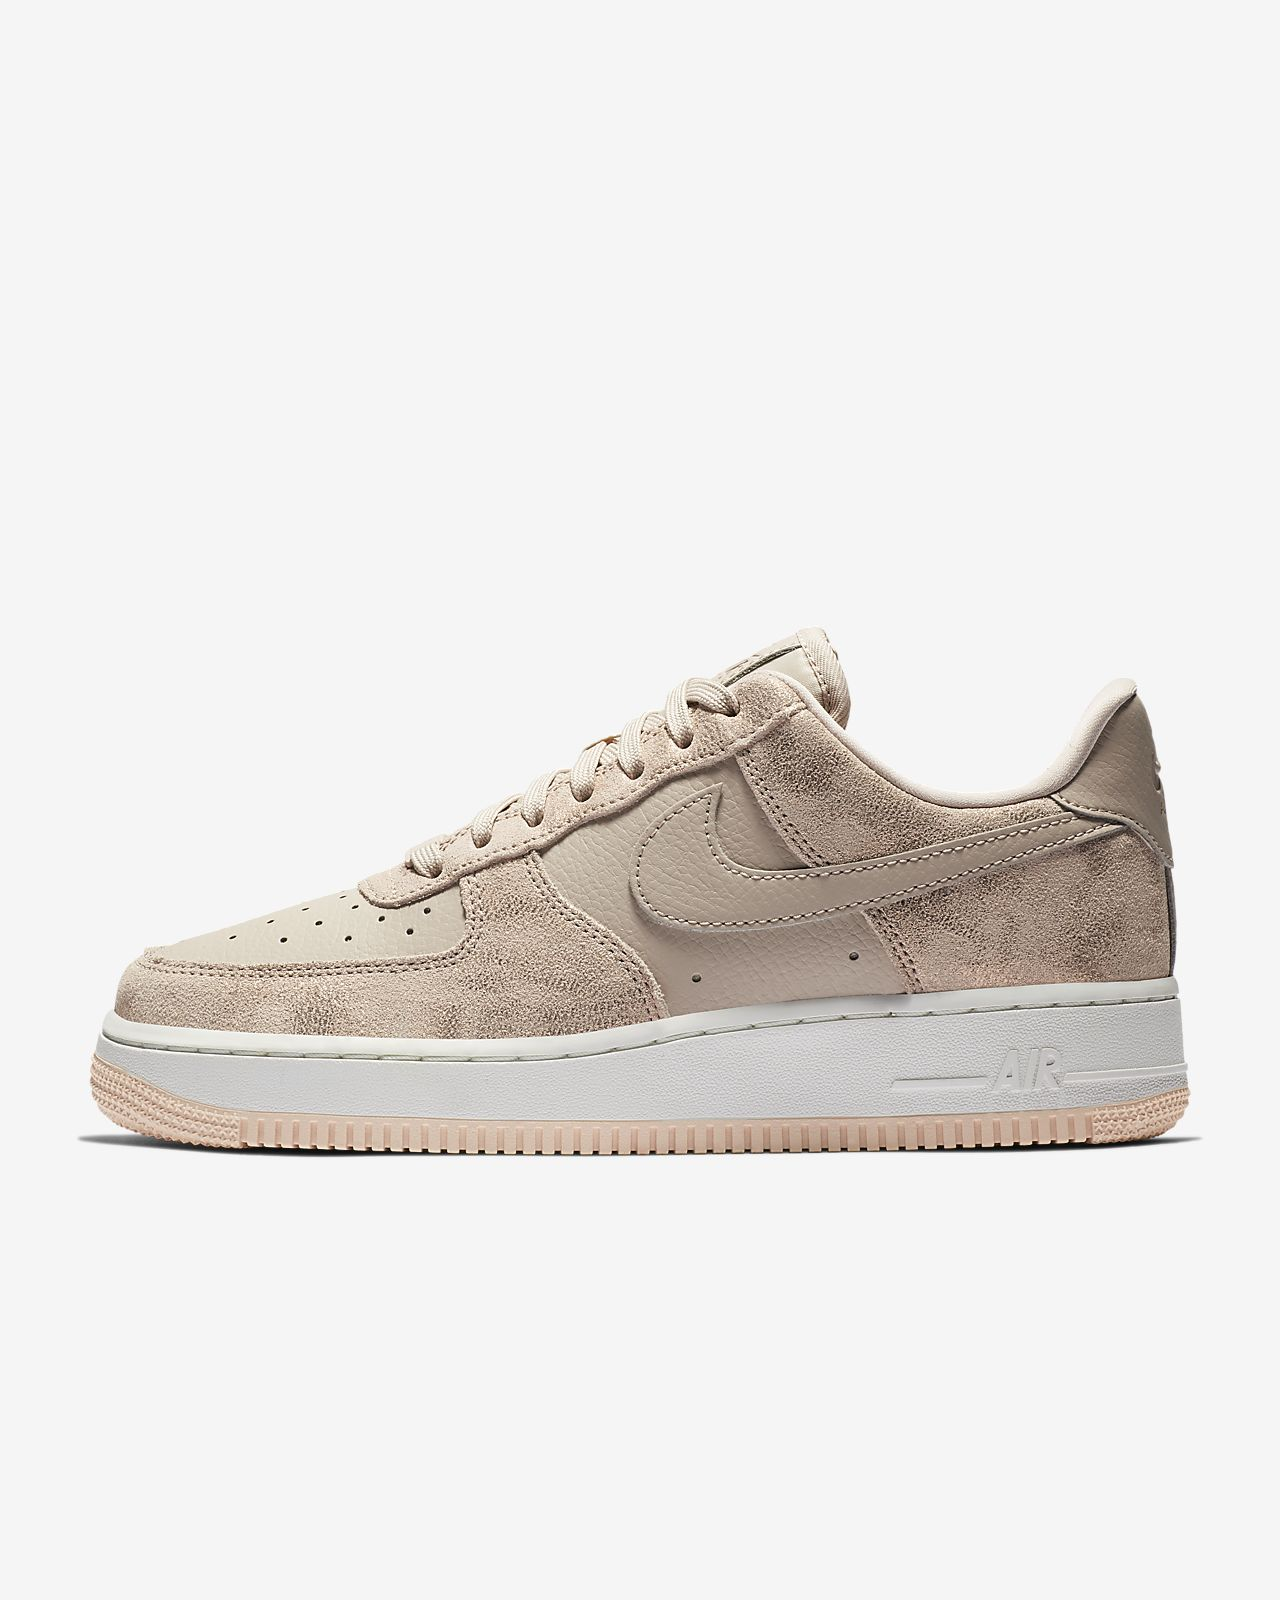 air force 1 size 3.5